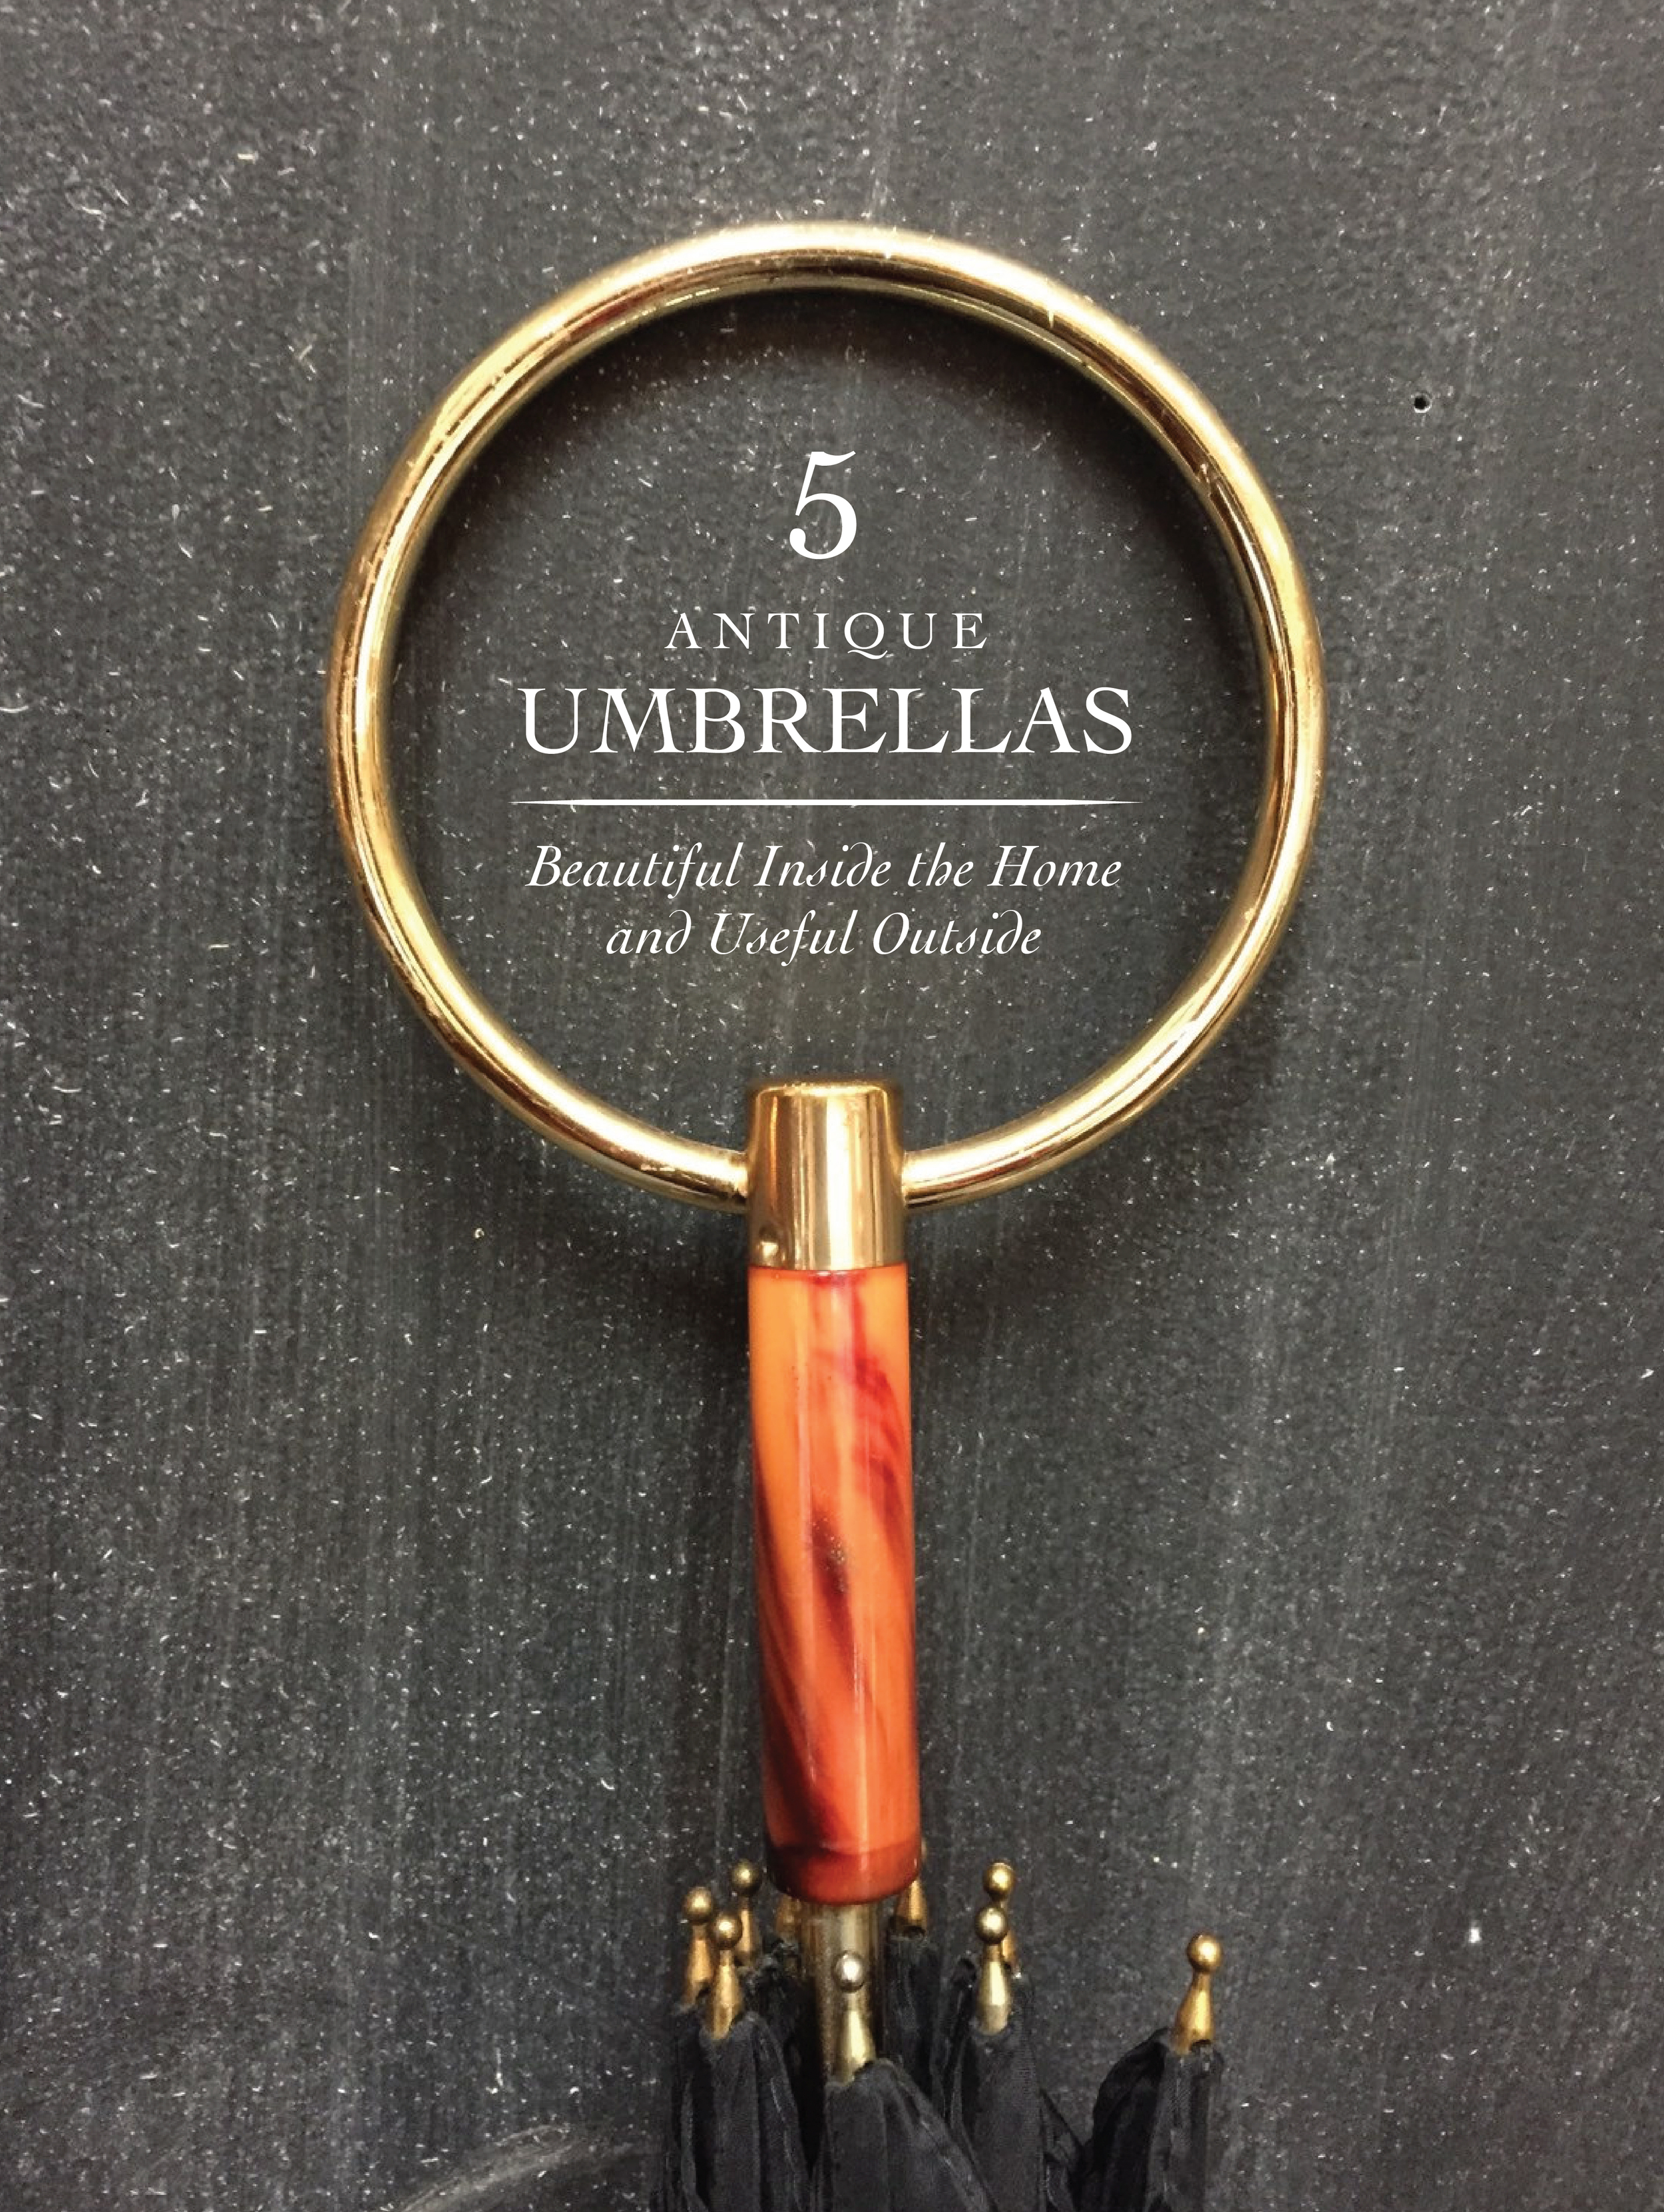 5 antique umbrellas that arebeautiful inside the home and useful outside | Keeper & Co. Blog